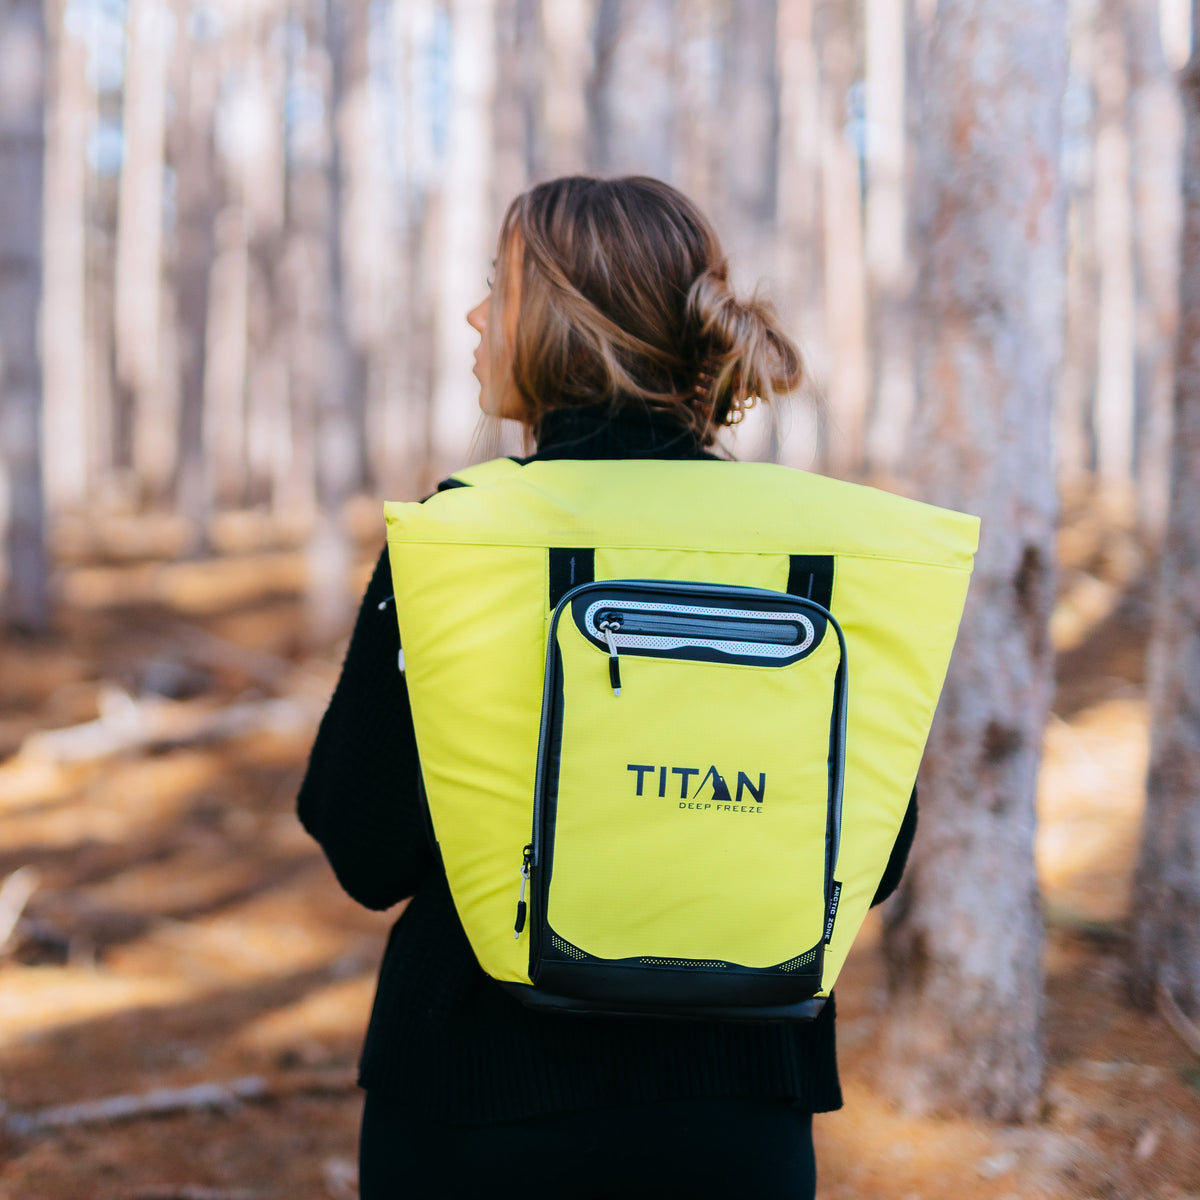 Titan Deep Freeze® 20 Can Rolltop Backpack - Citrus - Lifestyle, model wearing backpack cooler